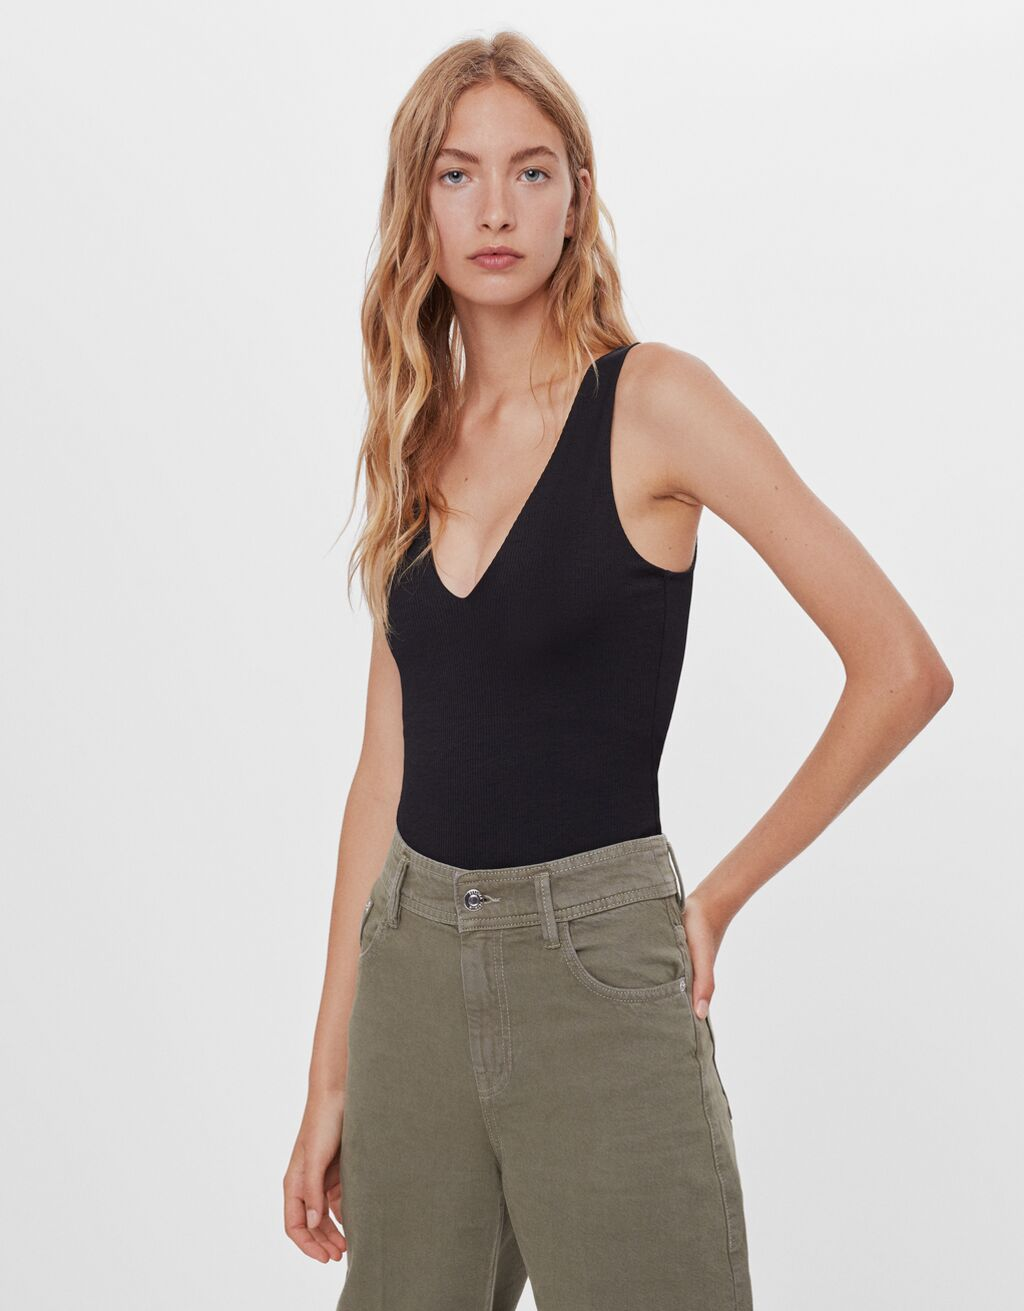 V-neck bodysuit with straps